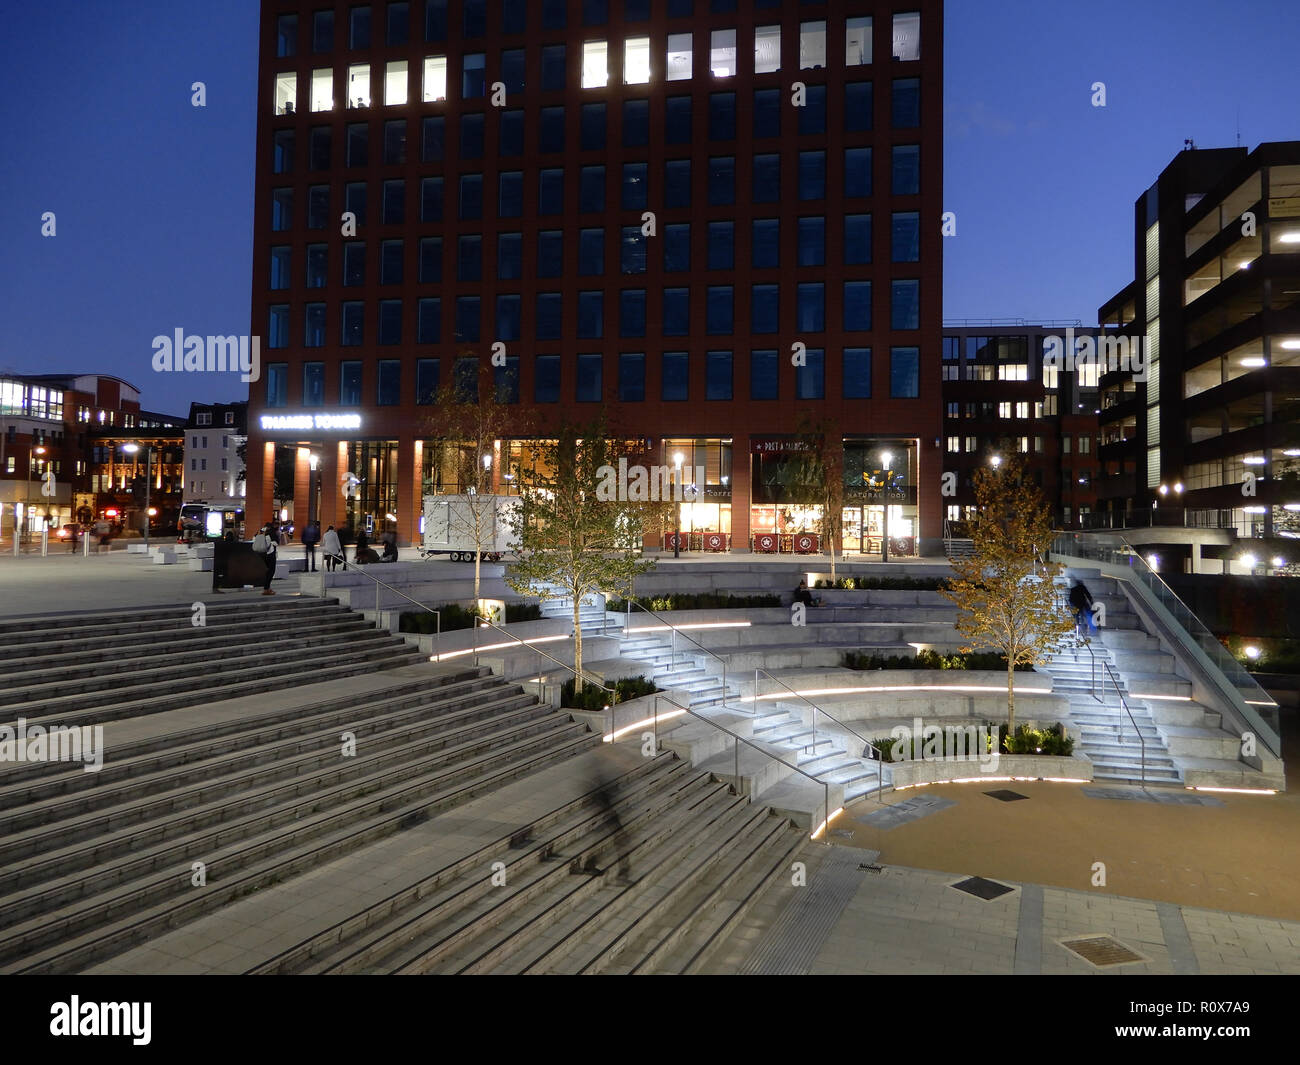 Image result for reading station STEPS